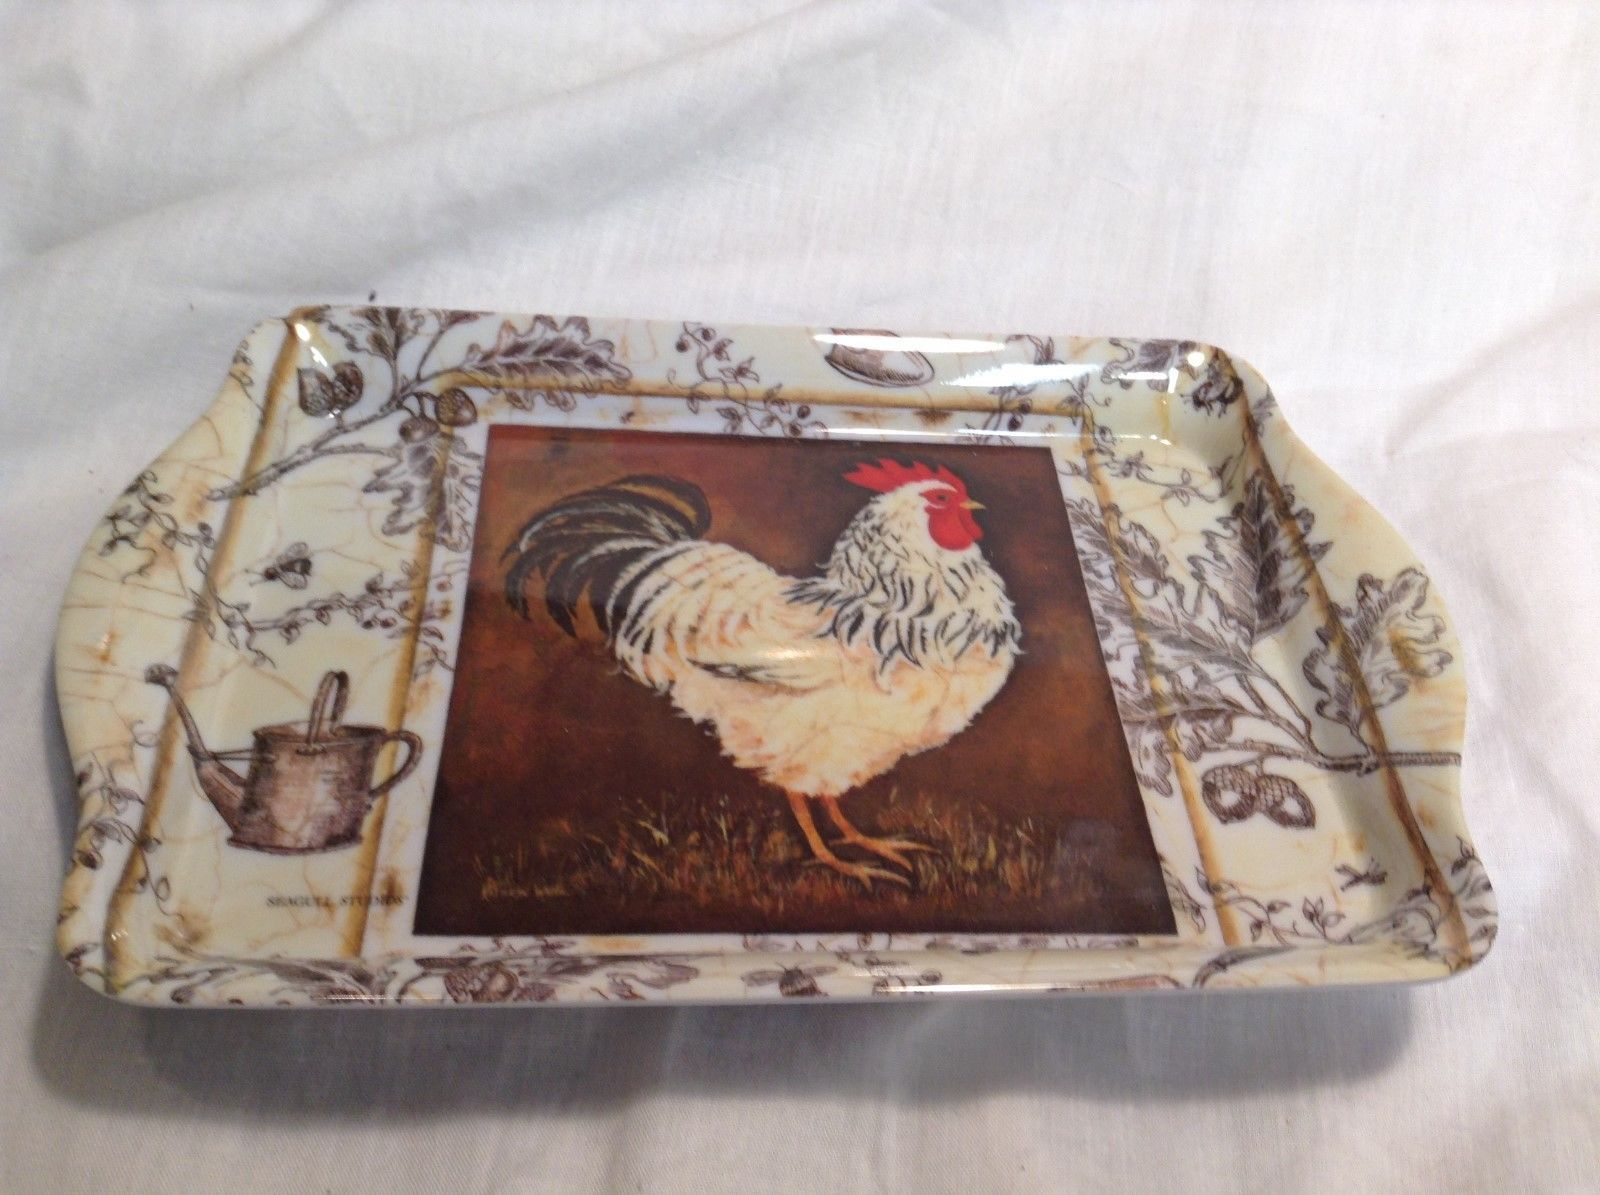 NEW Seagull Studios Dishwasher Safe Sm Plastic Platter w Chickens